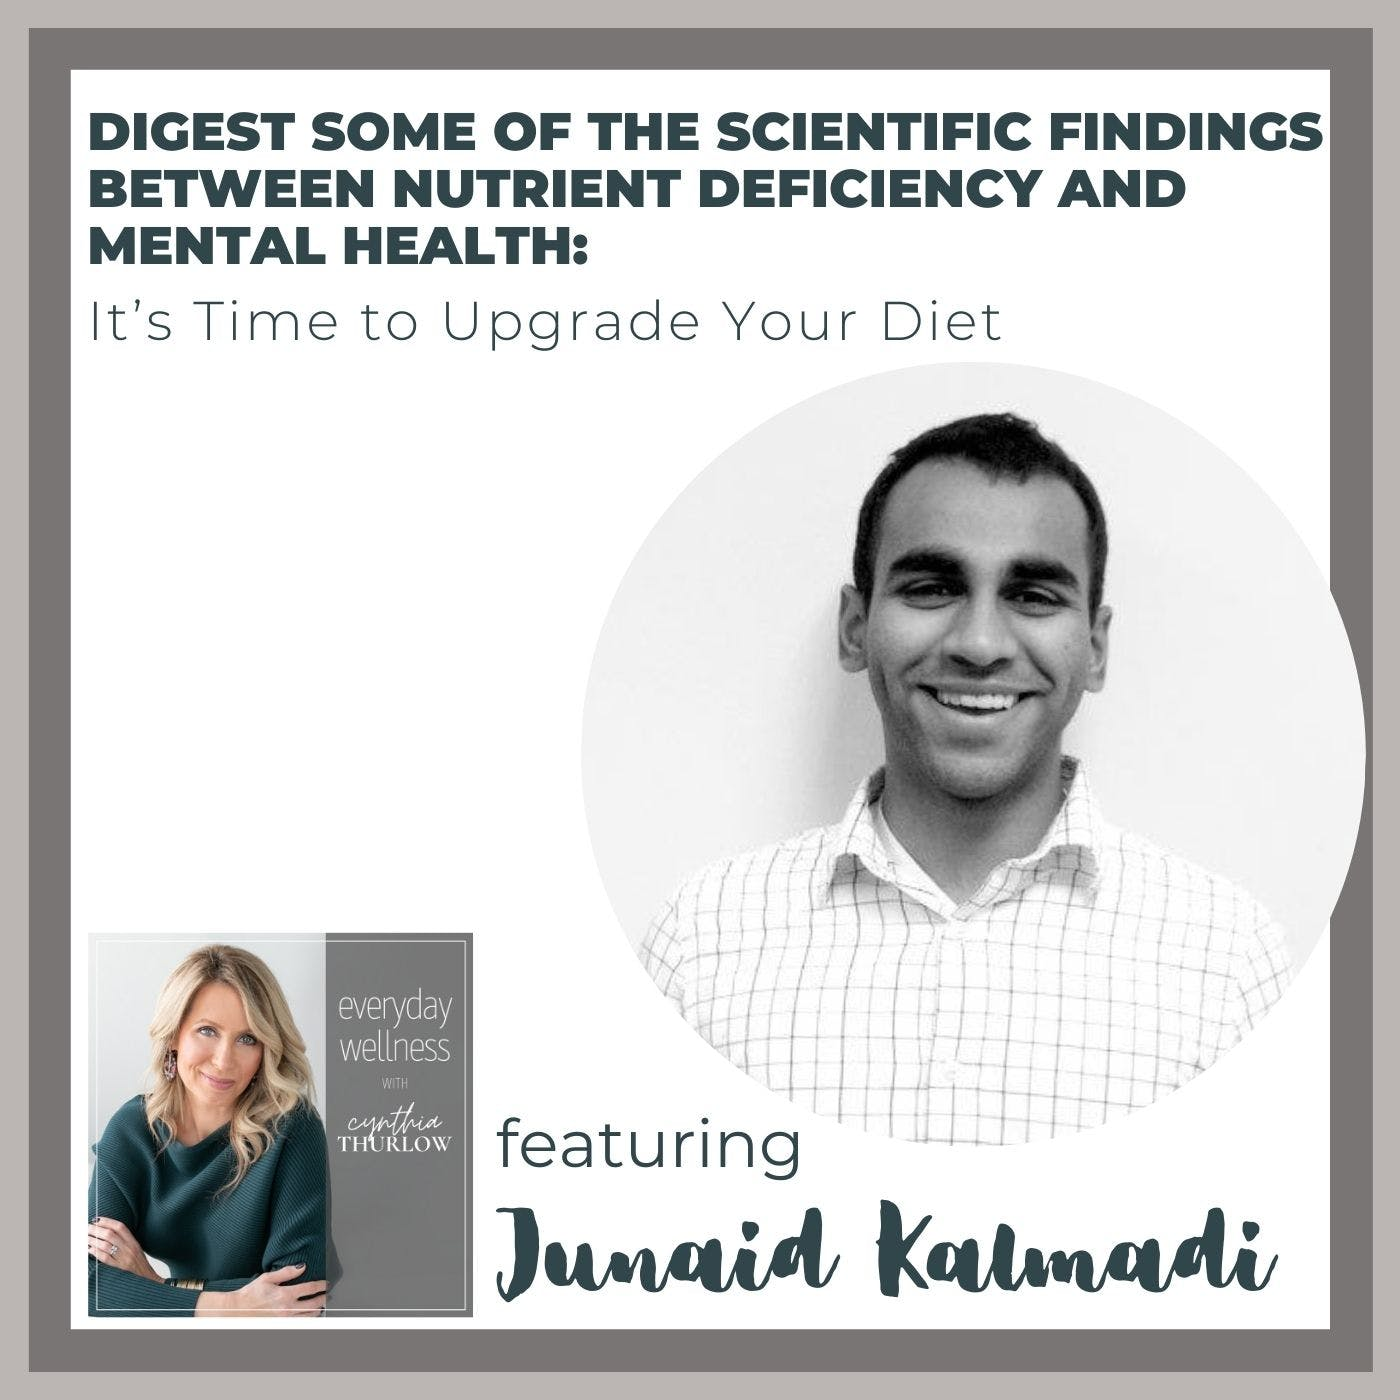 Ep. 164 Digest Some Of The Scientific Findings Between Nutrient Deficiency And Mental Health: It's Time to Upgrade Your Diet with Junaid Kalmadi